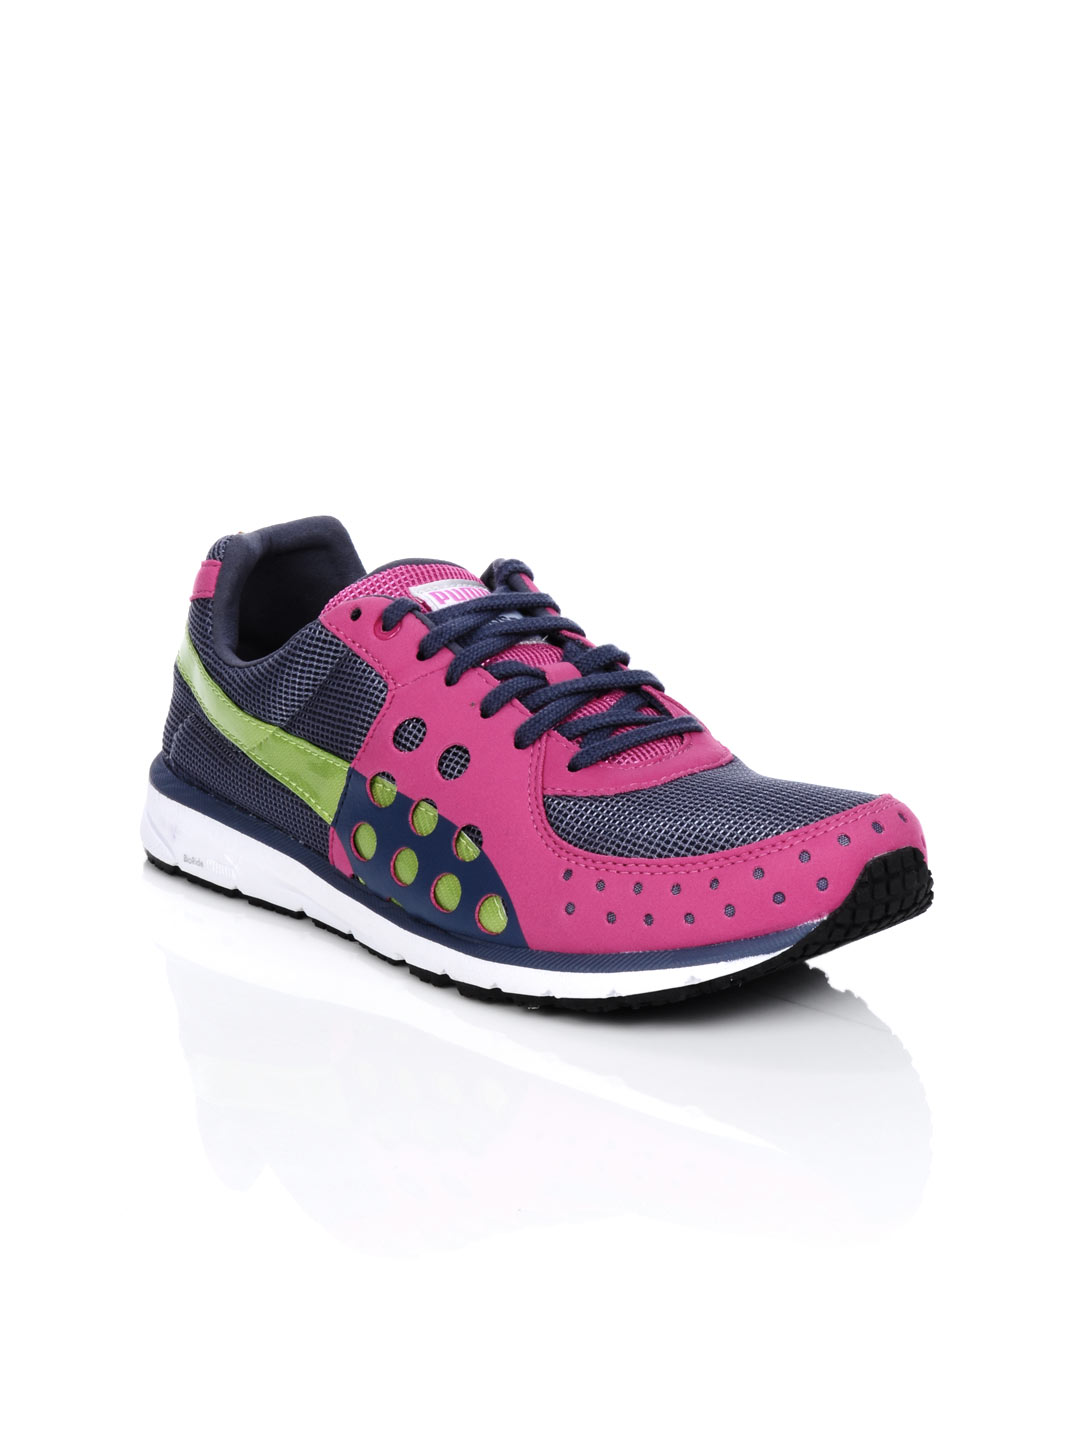 Puma Women Faas 300 Blue & Pink Sports Shoes